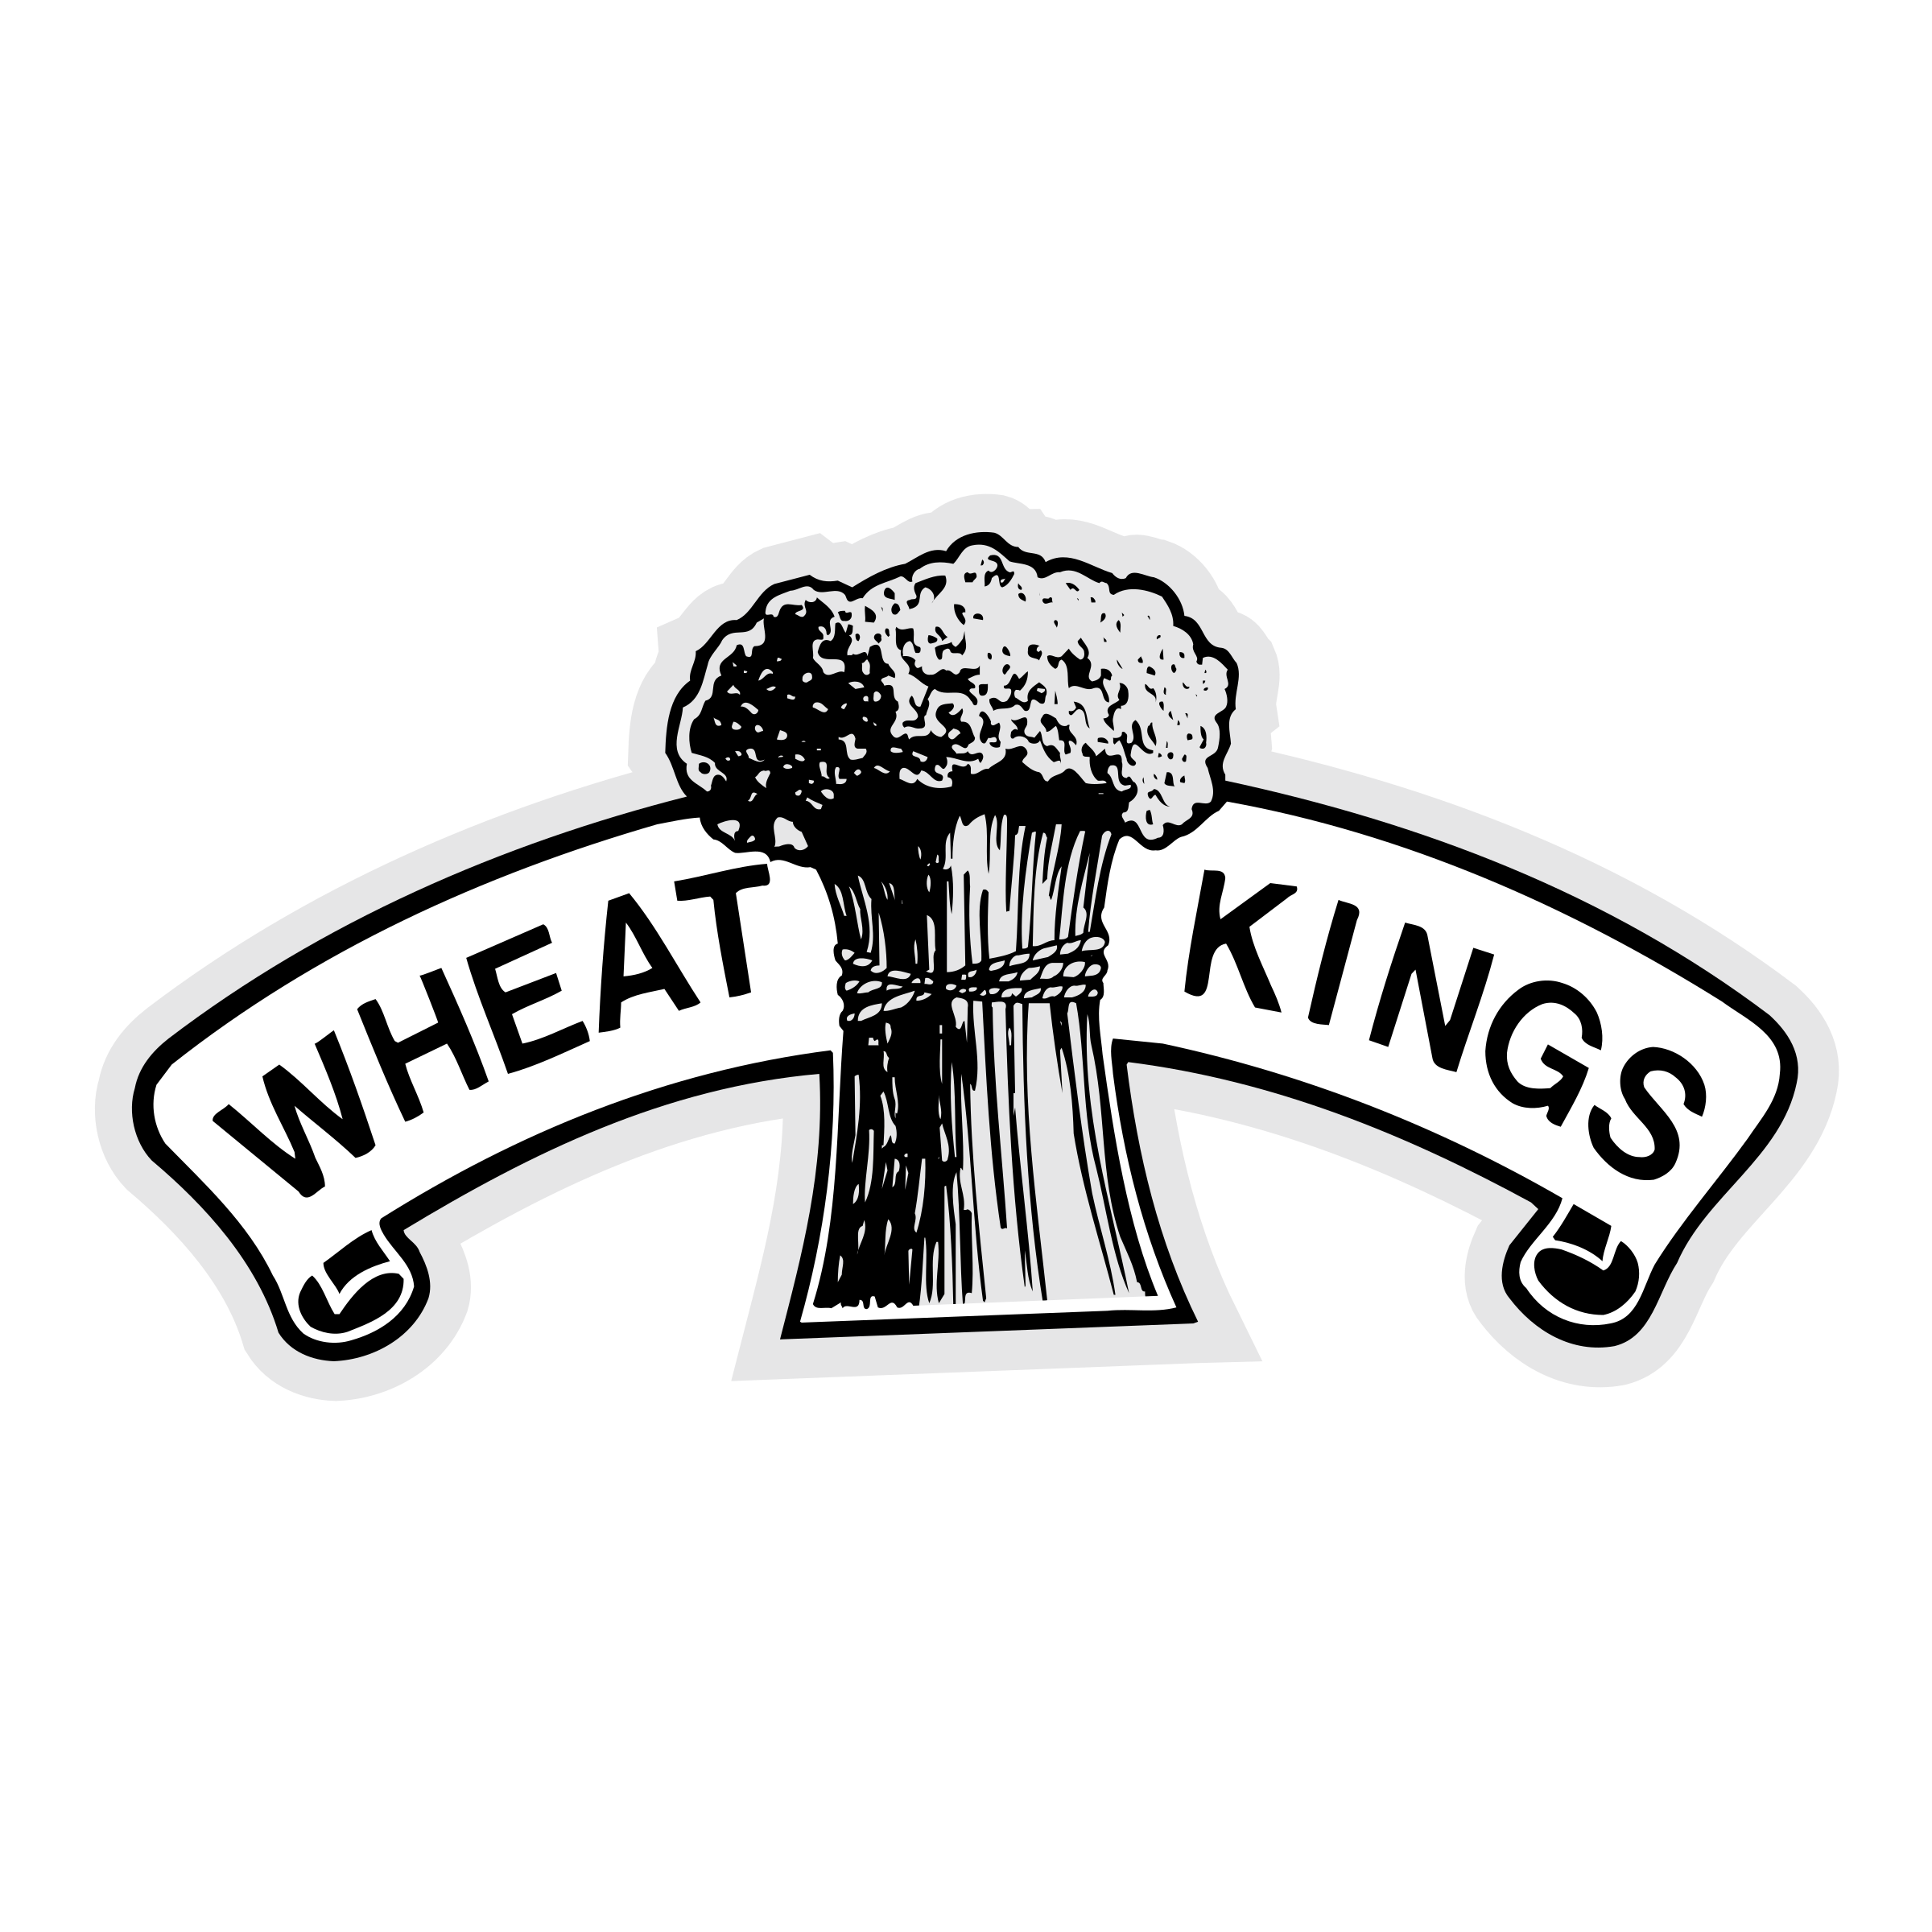 Vector wheat logo. Kings png transparent svg